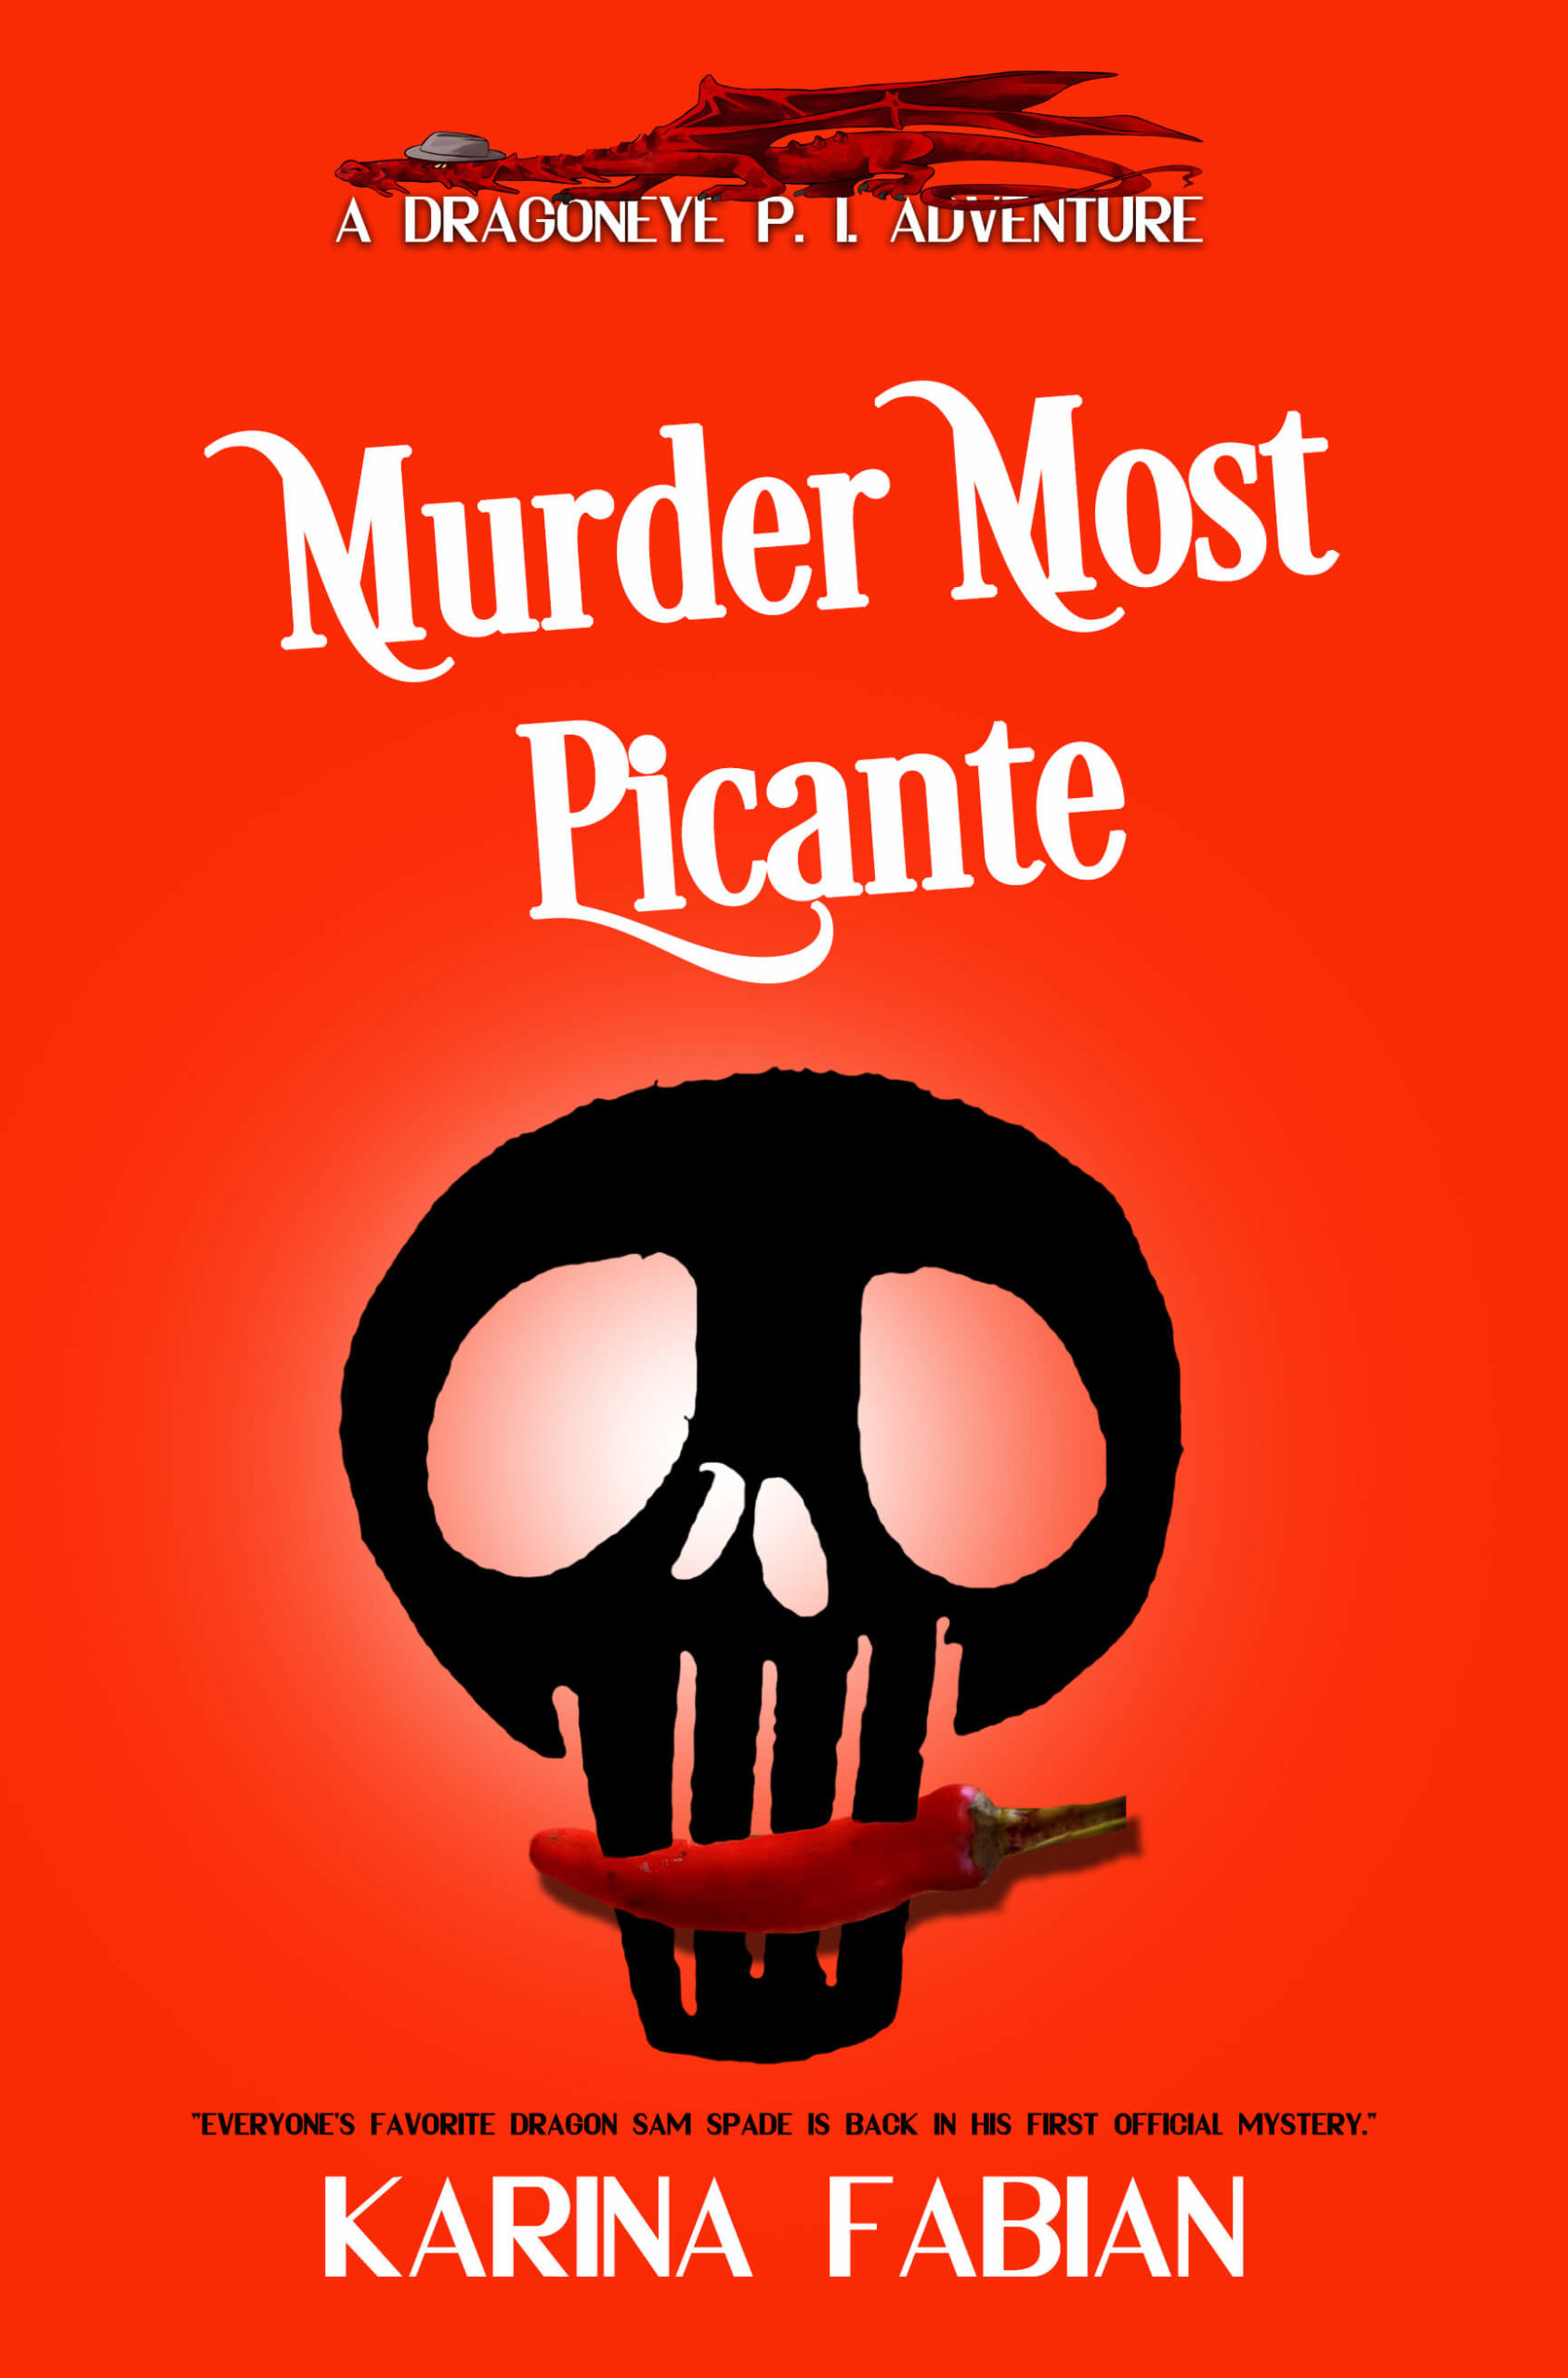 Cover art for Murder Most Picante